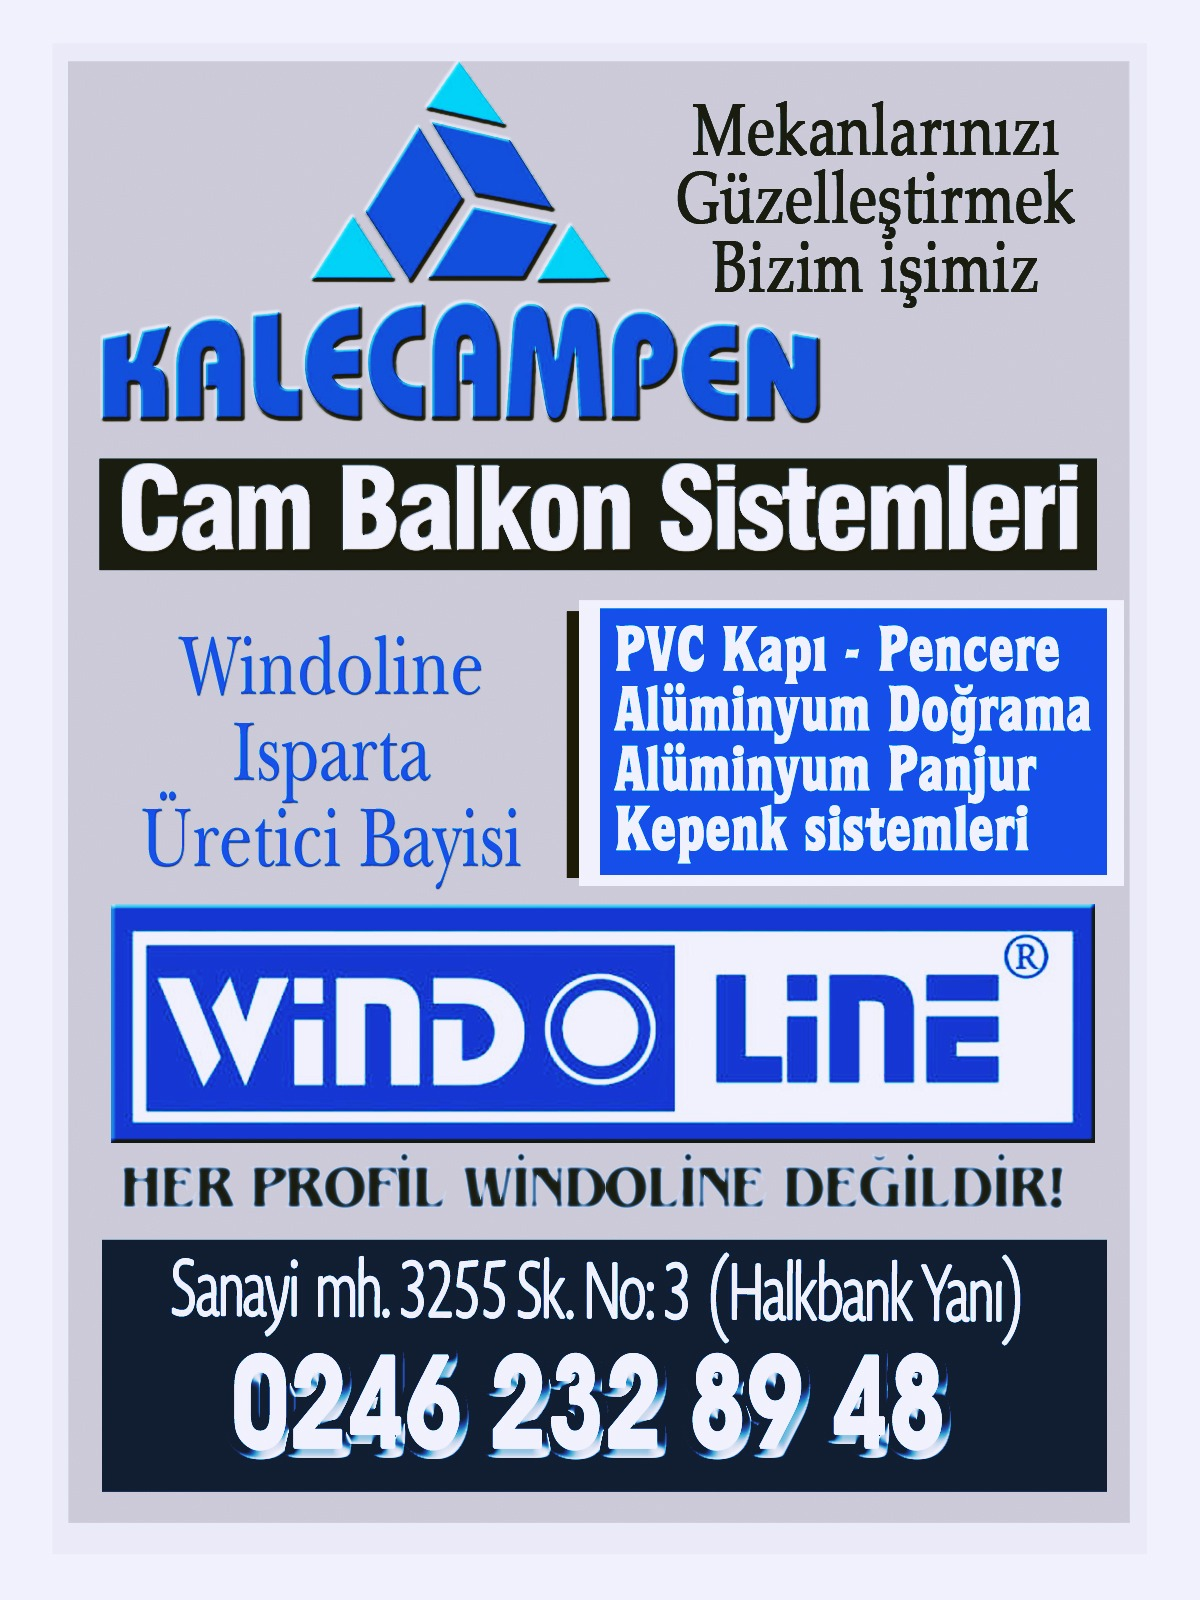 ISPARTA cam balkon